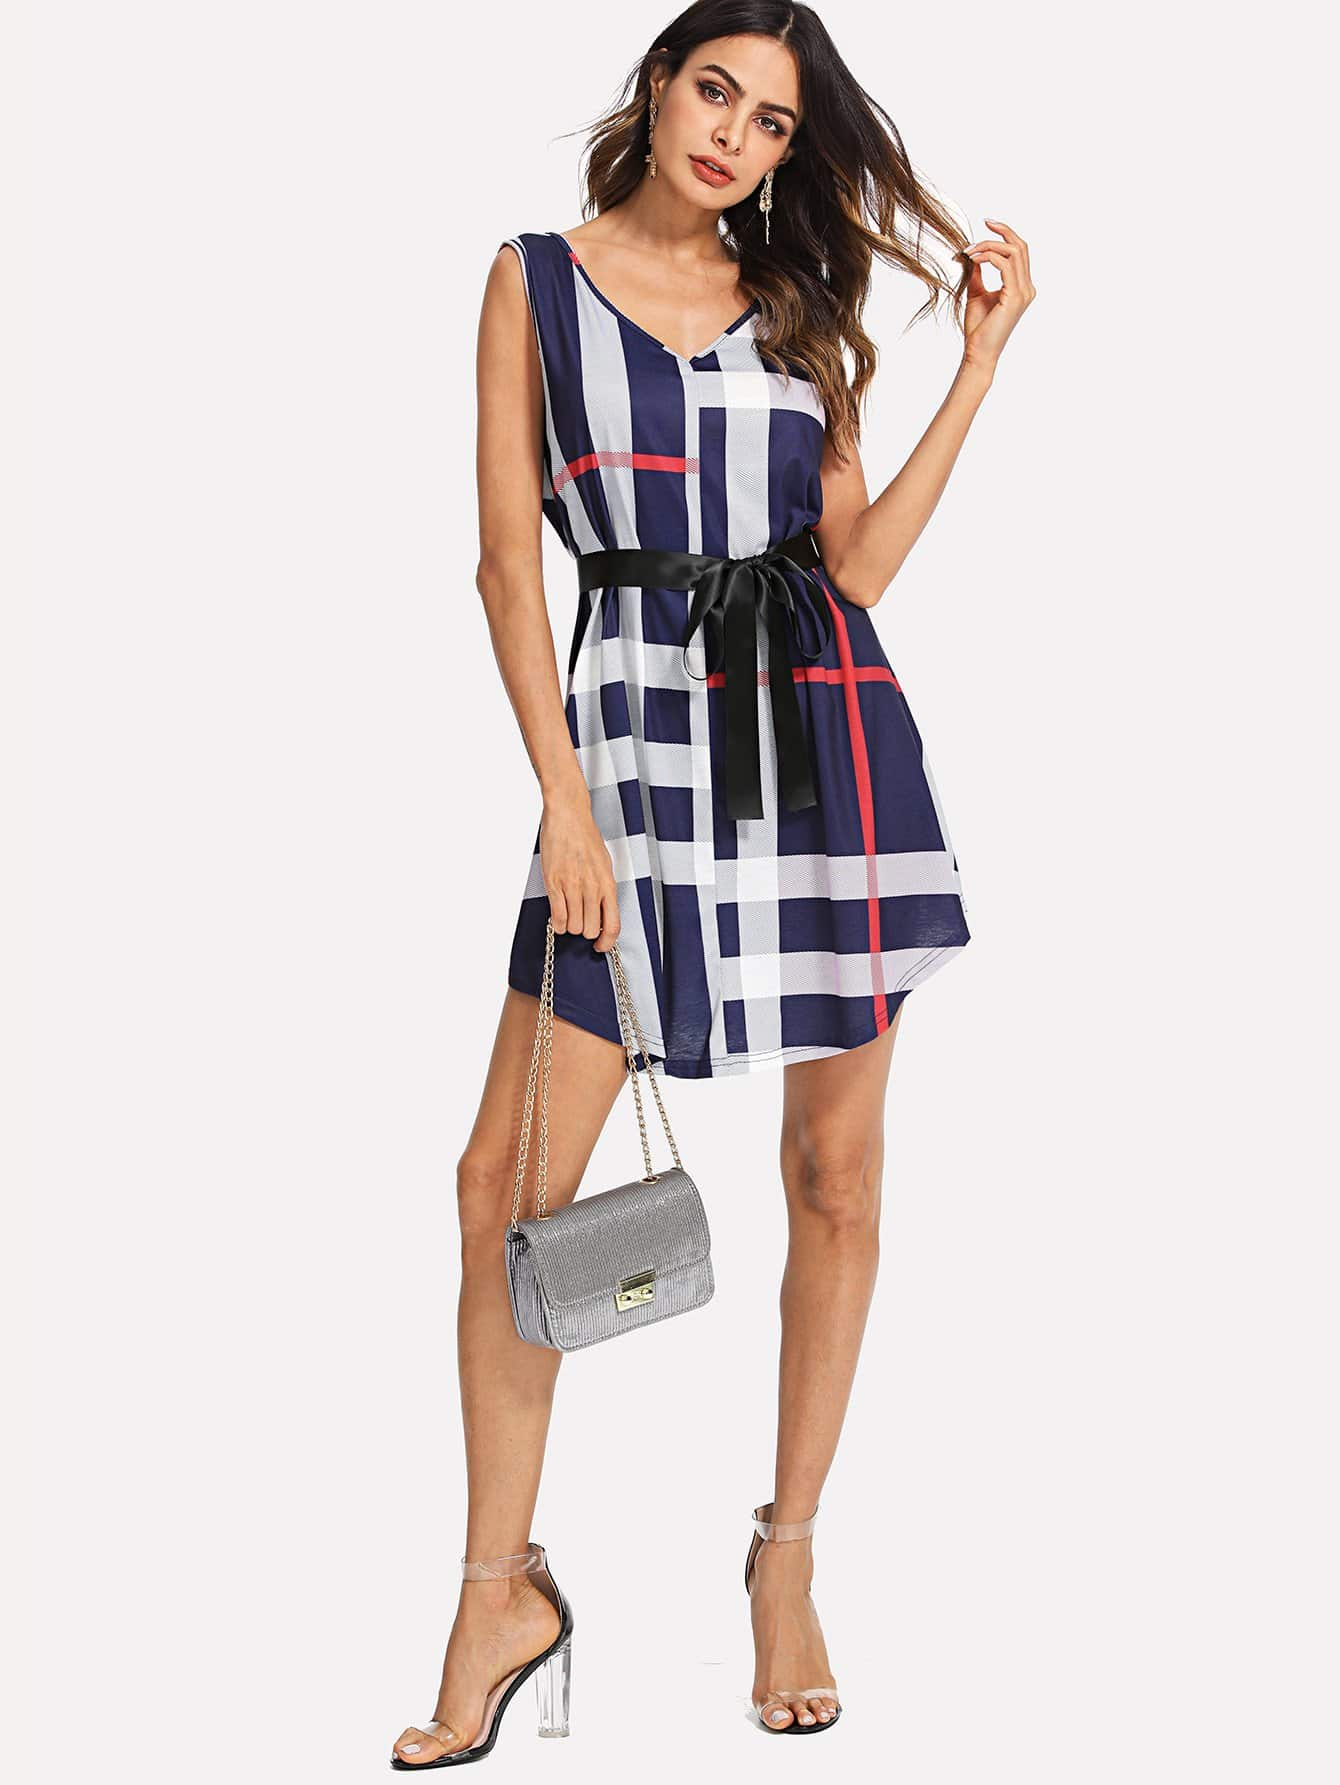 Plaid Print Sleeveless Dress zip back fit and flared plaid dress